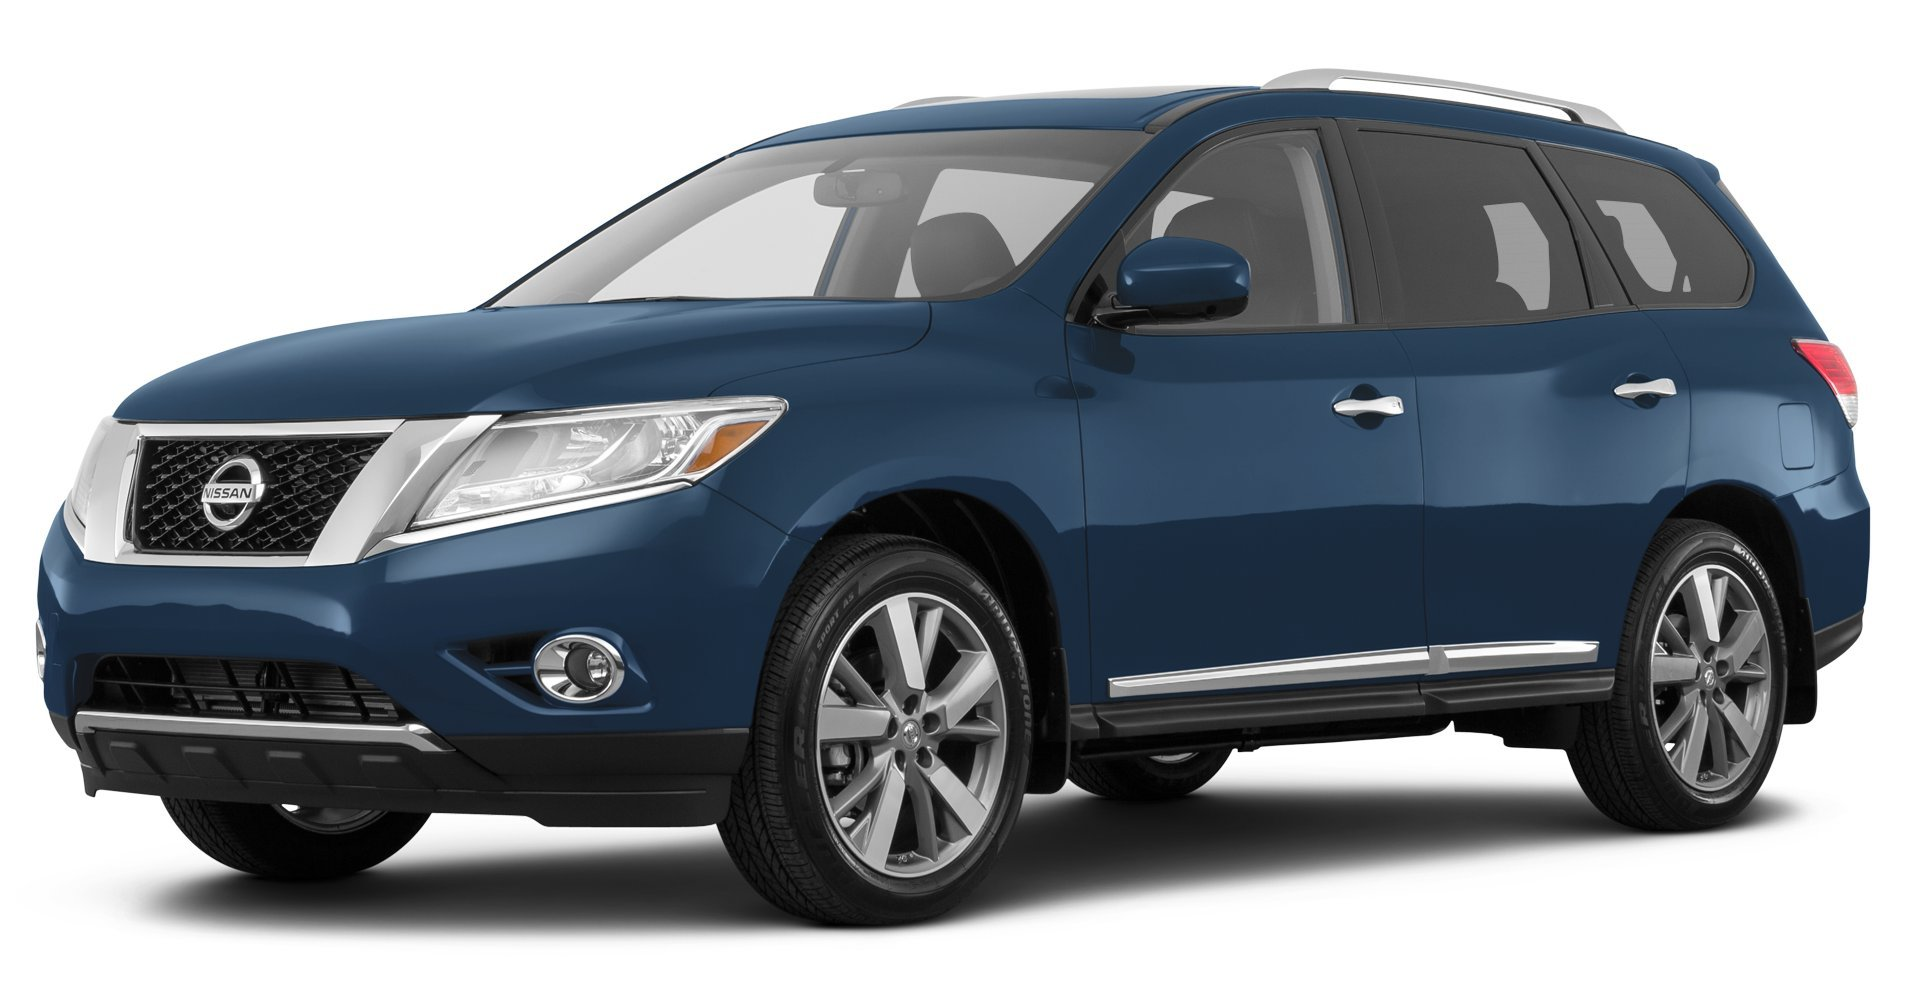 2016 nissan pathfinder reviews images and specs vehicles. Black Bedroom Furniture Sets. Home Design Ideas